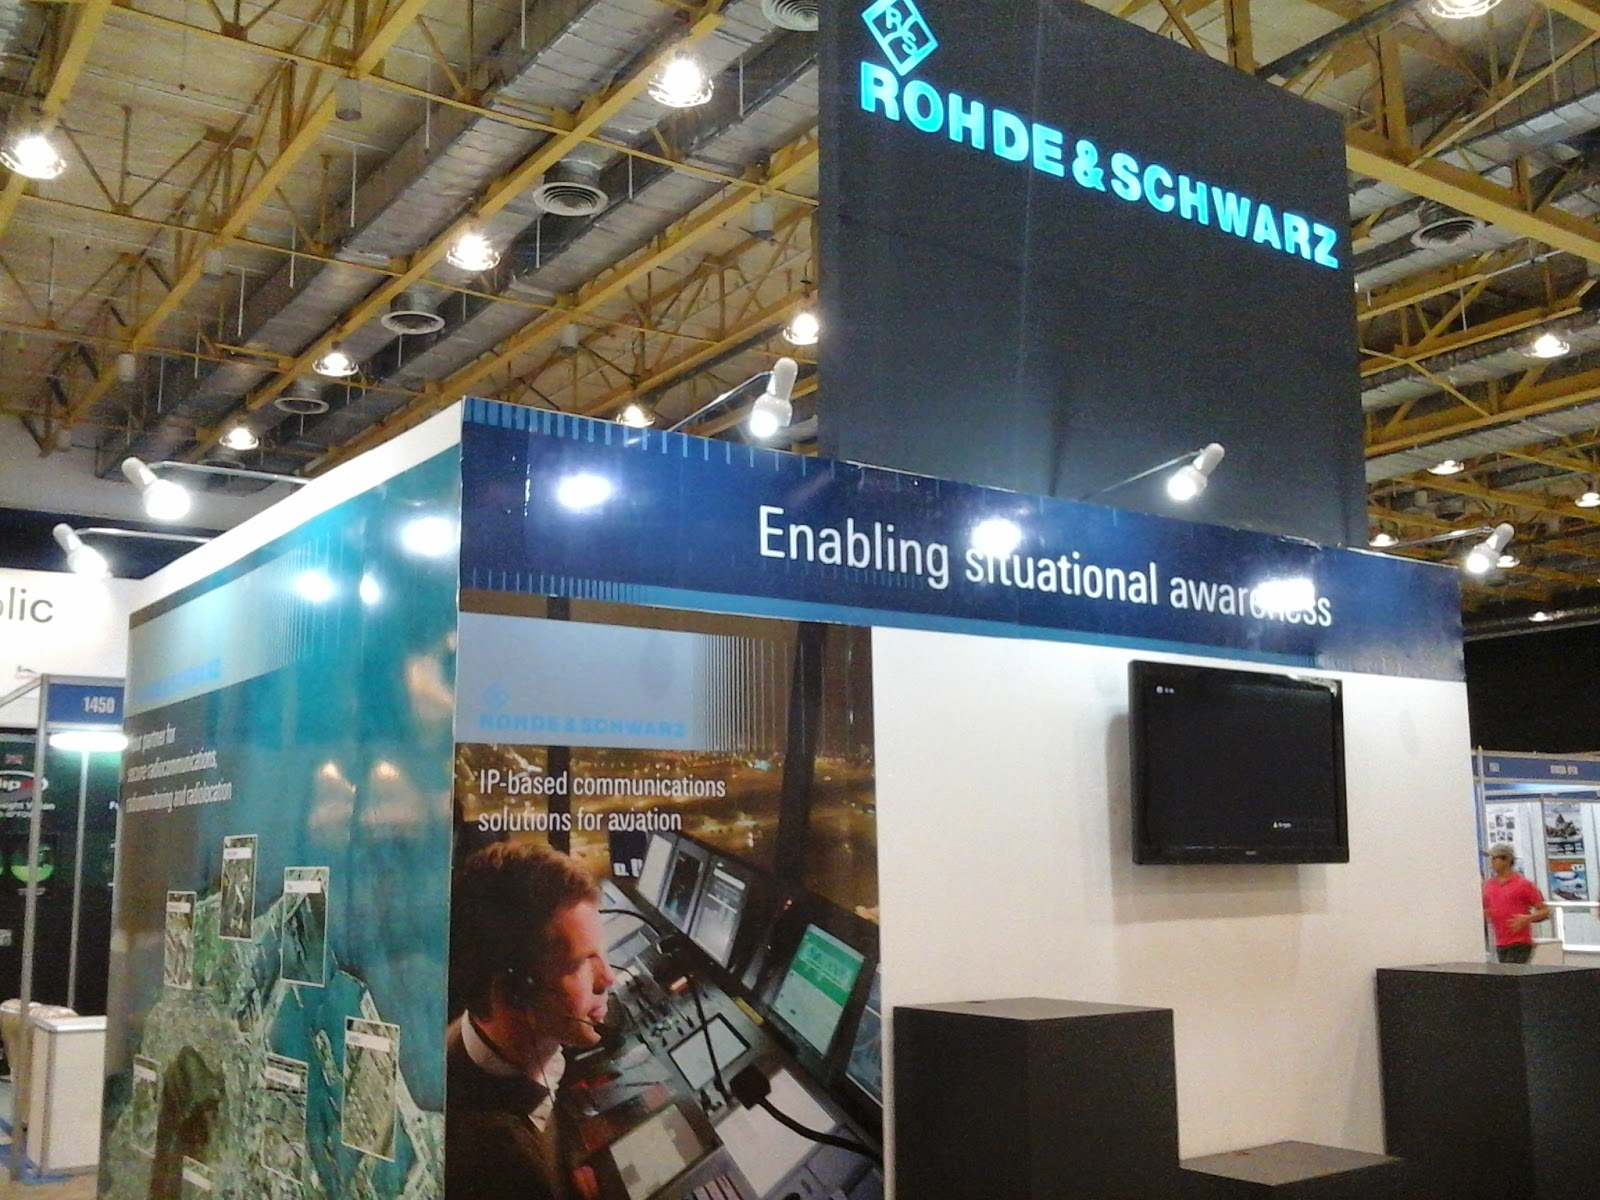 Side view of Rohde & Schwarz Exhibition Booth